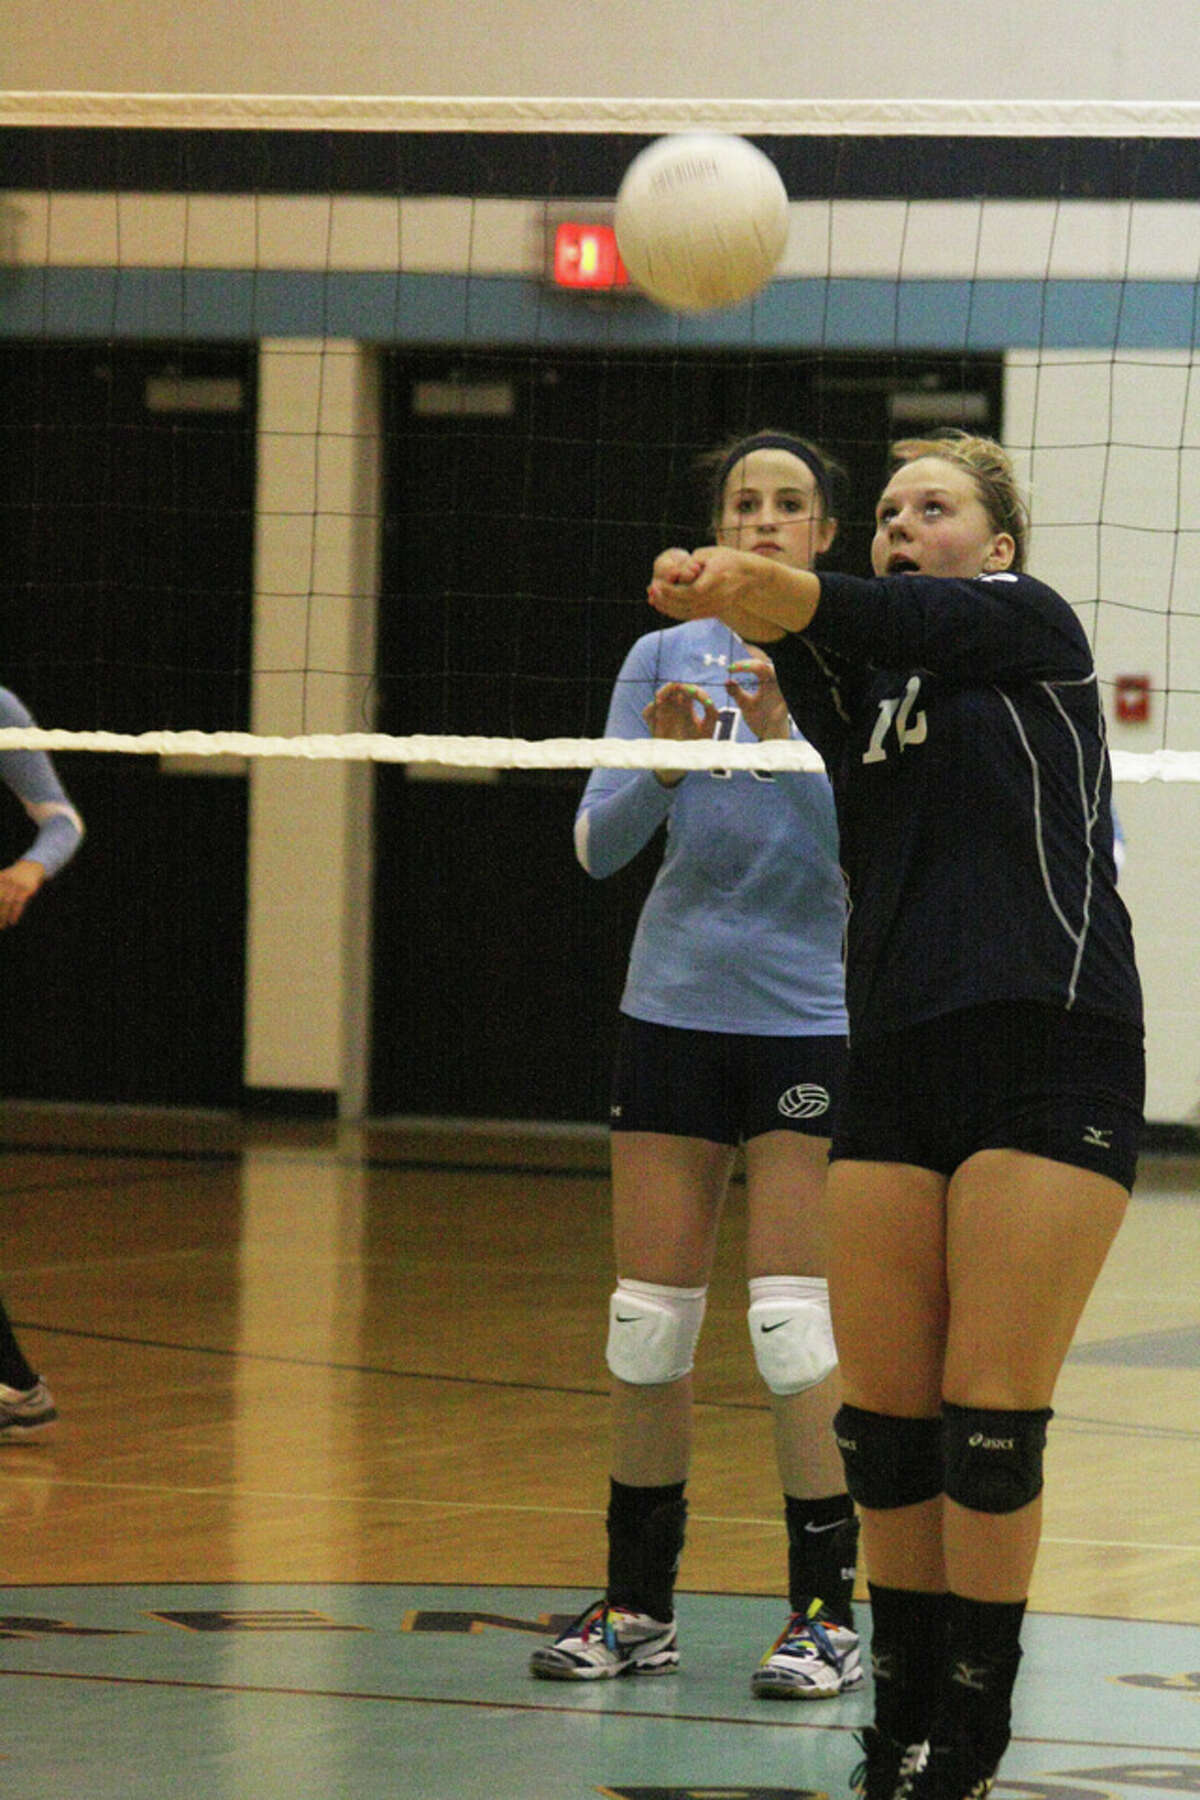 Manistee's Nichole Rybicki sets the ball during the match against the Bobcats. (Dylan Savela/News Advocate)